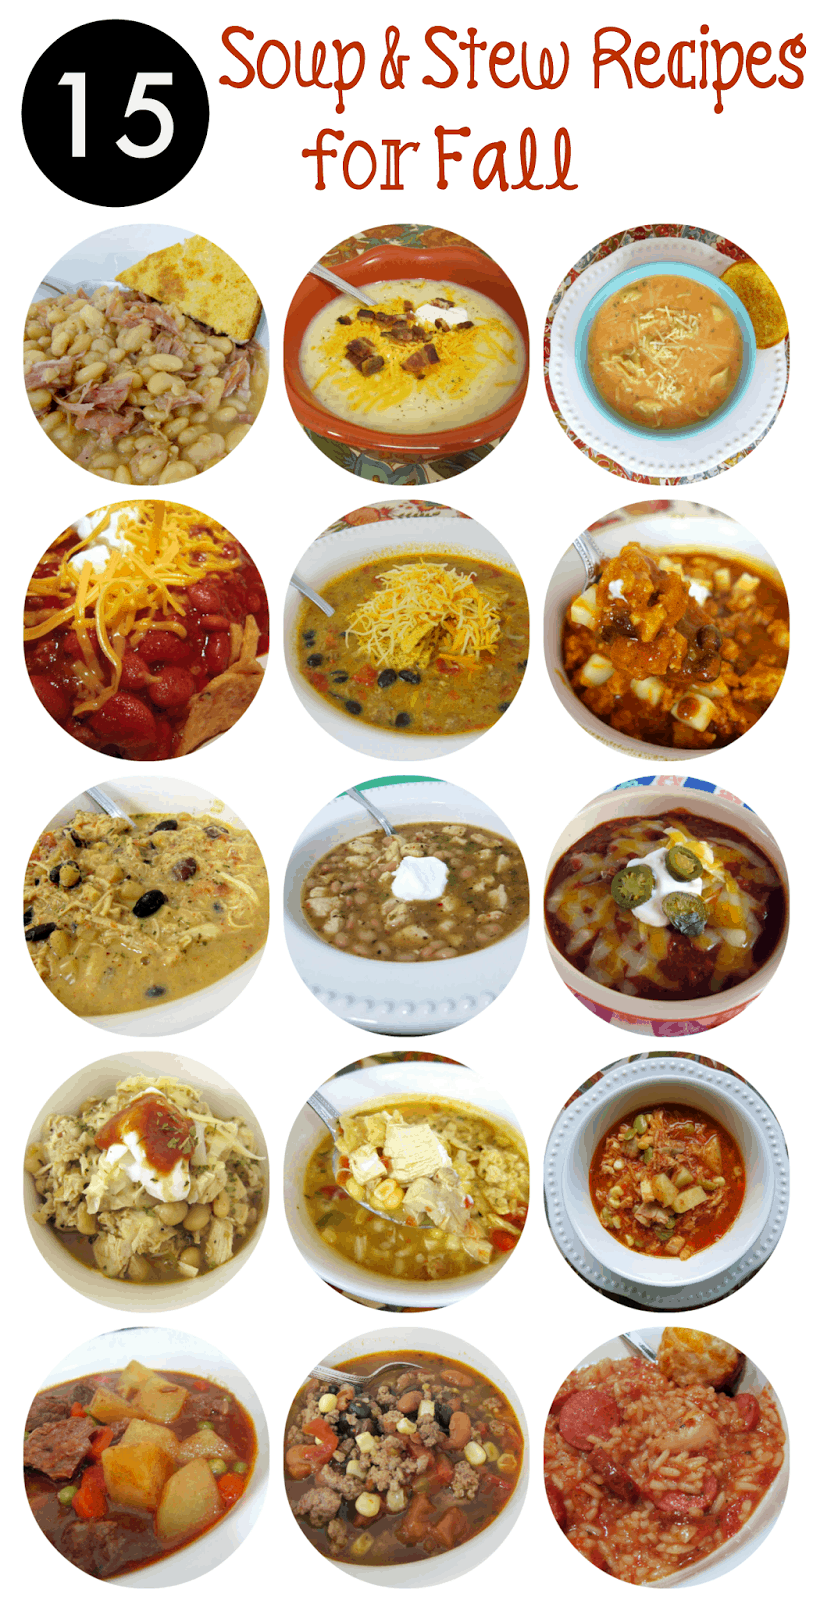 15 Soup and Stew recipes for Fall